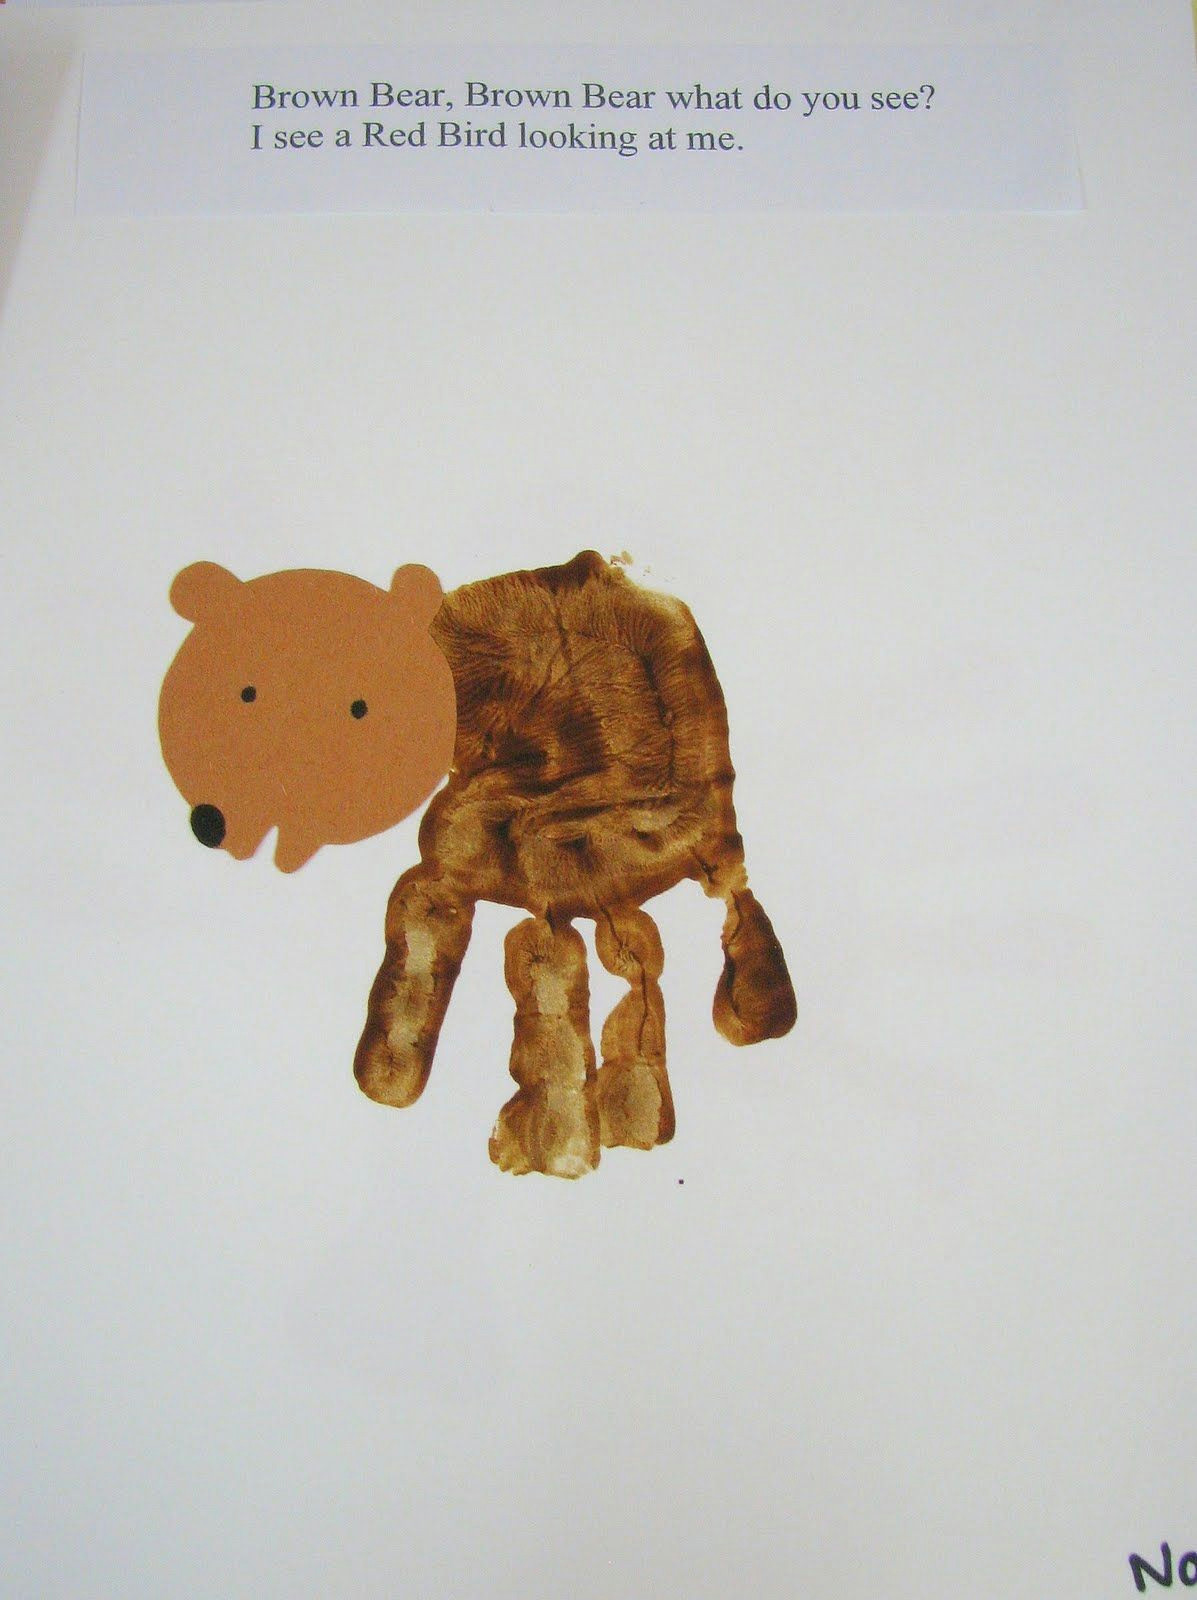 Drawing Ideas for 2 Year Olds Preschool Ideas for 2 Year Olds Brown Bear Hand Print Book Brown